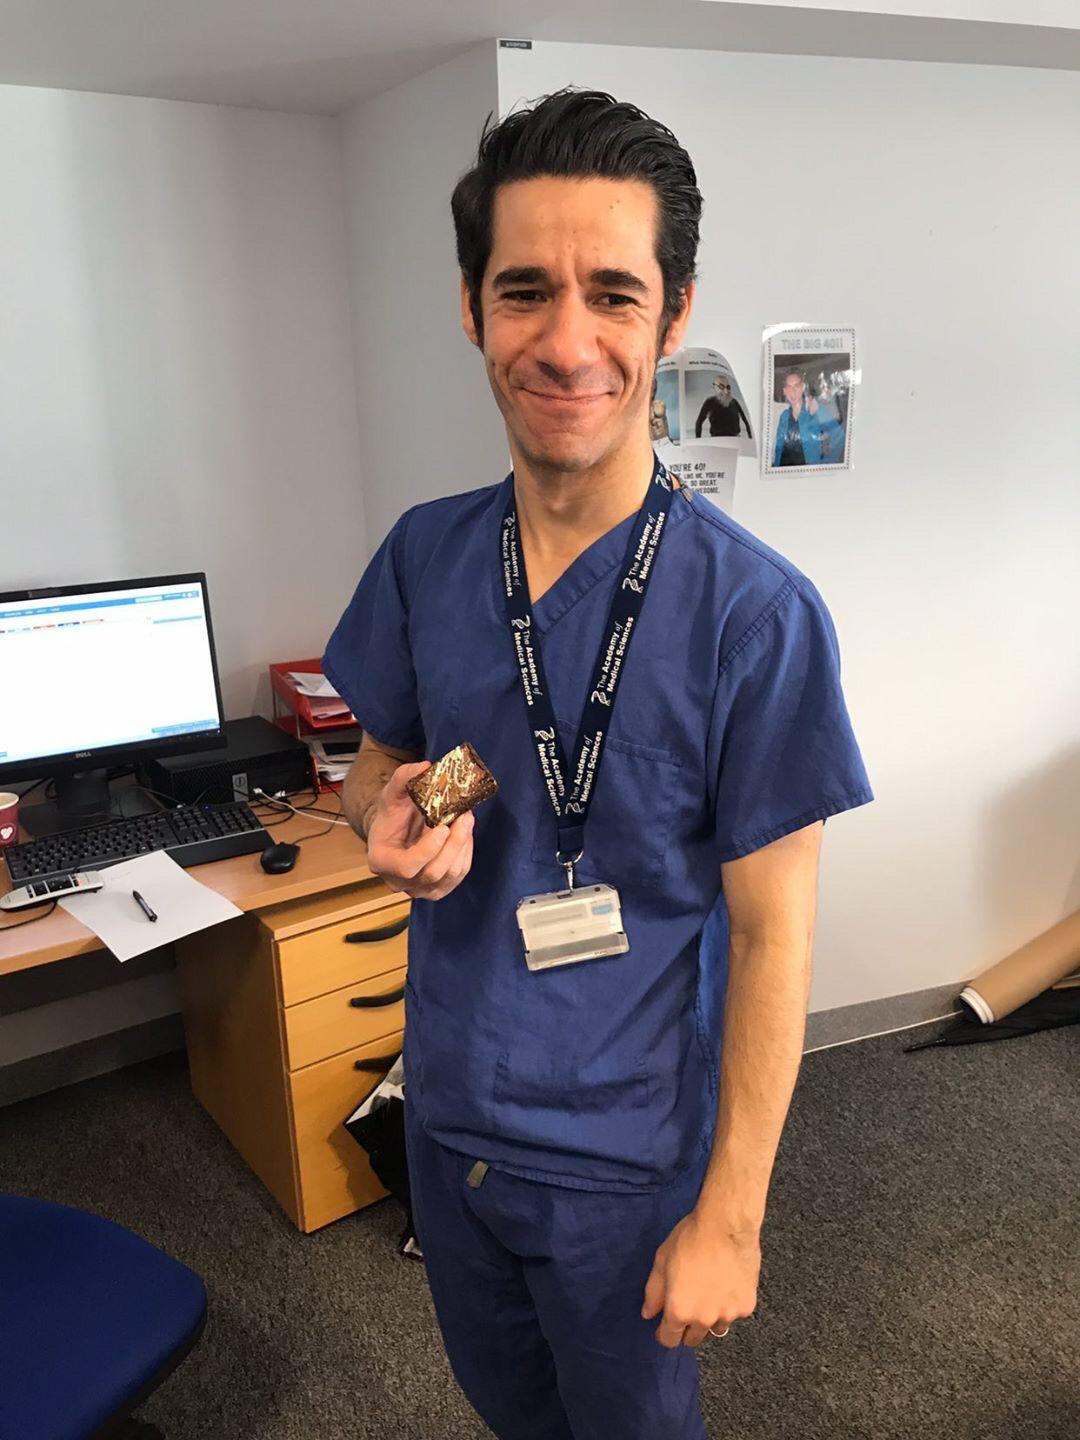 A photo of a NHS staff member holding a brownie from Mary's